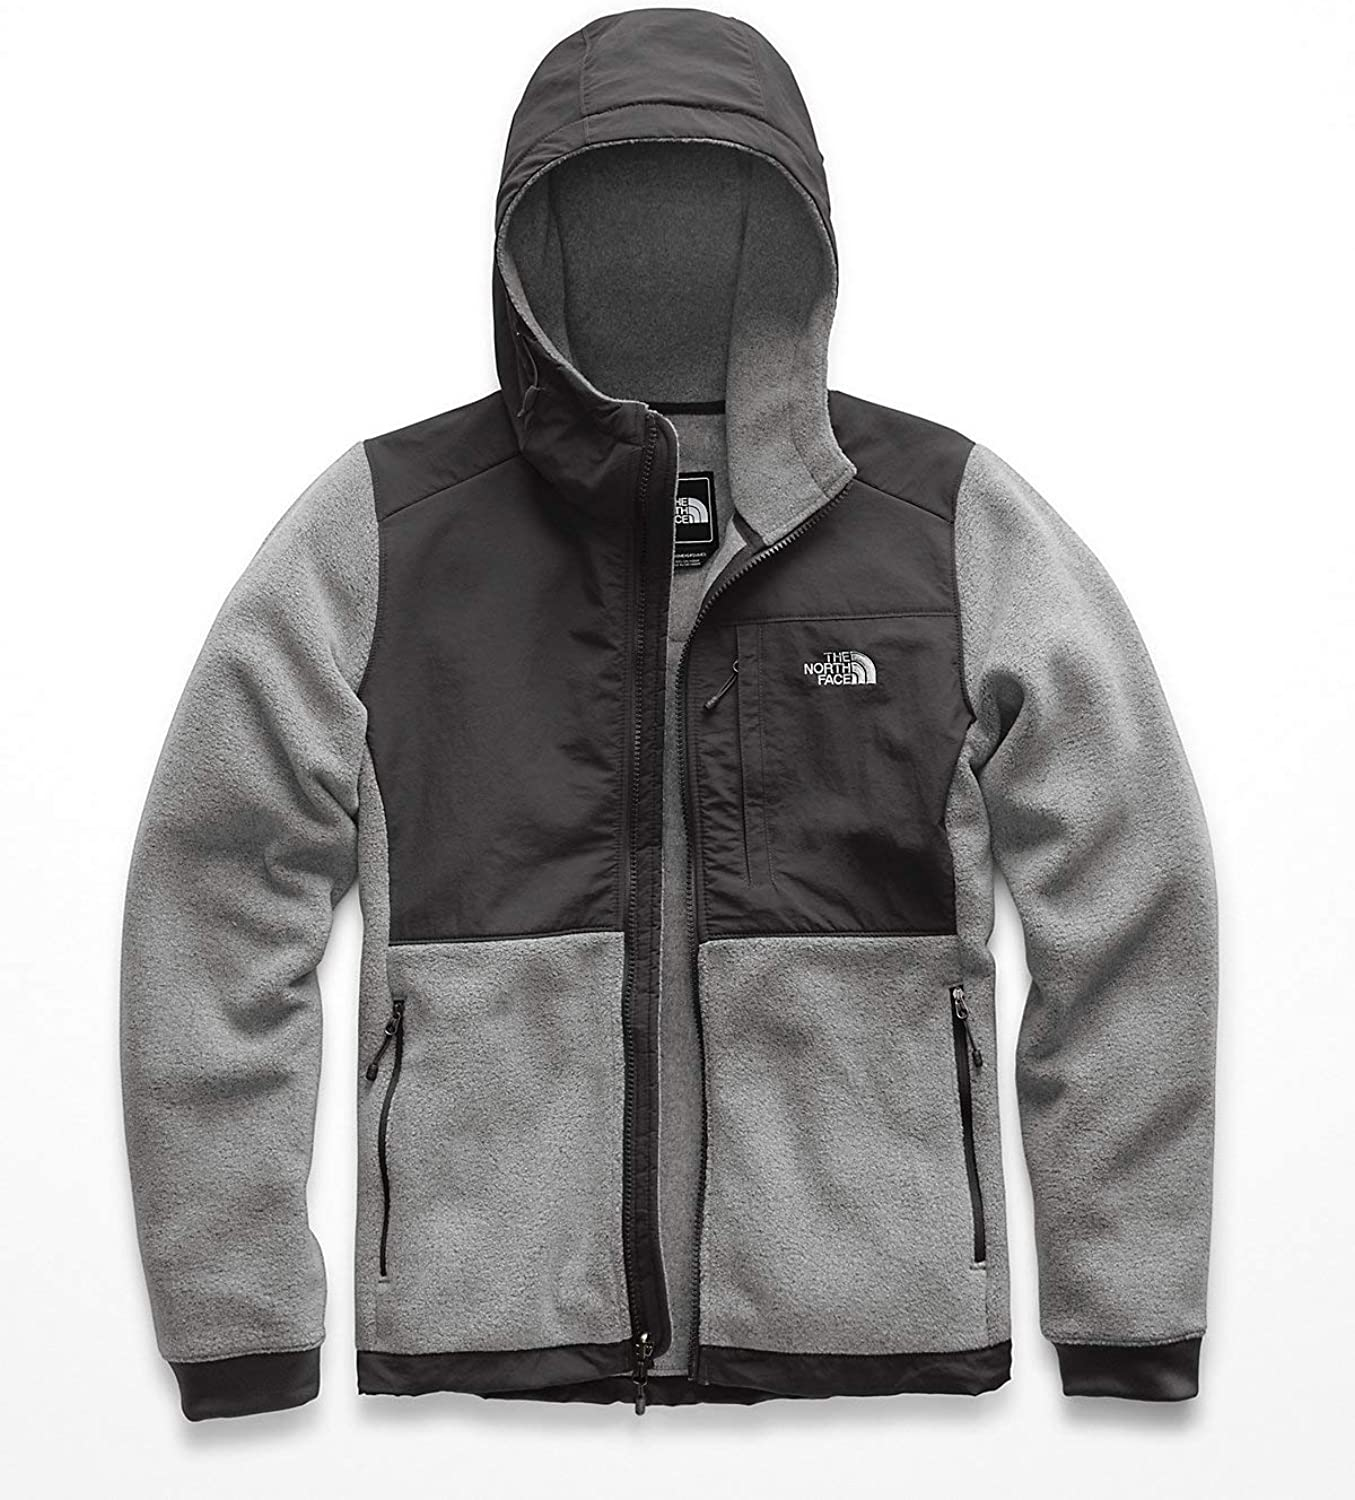 THE NORTH FACE Womens Denali 2 Hoodie NF0A3SX1